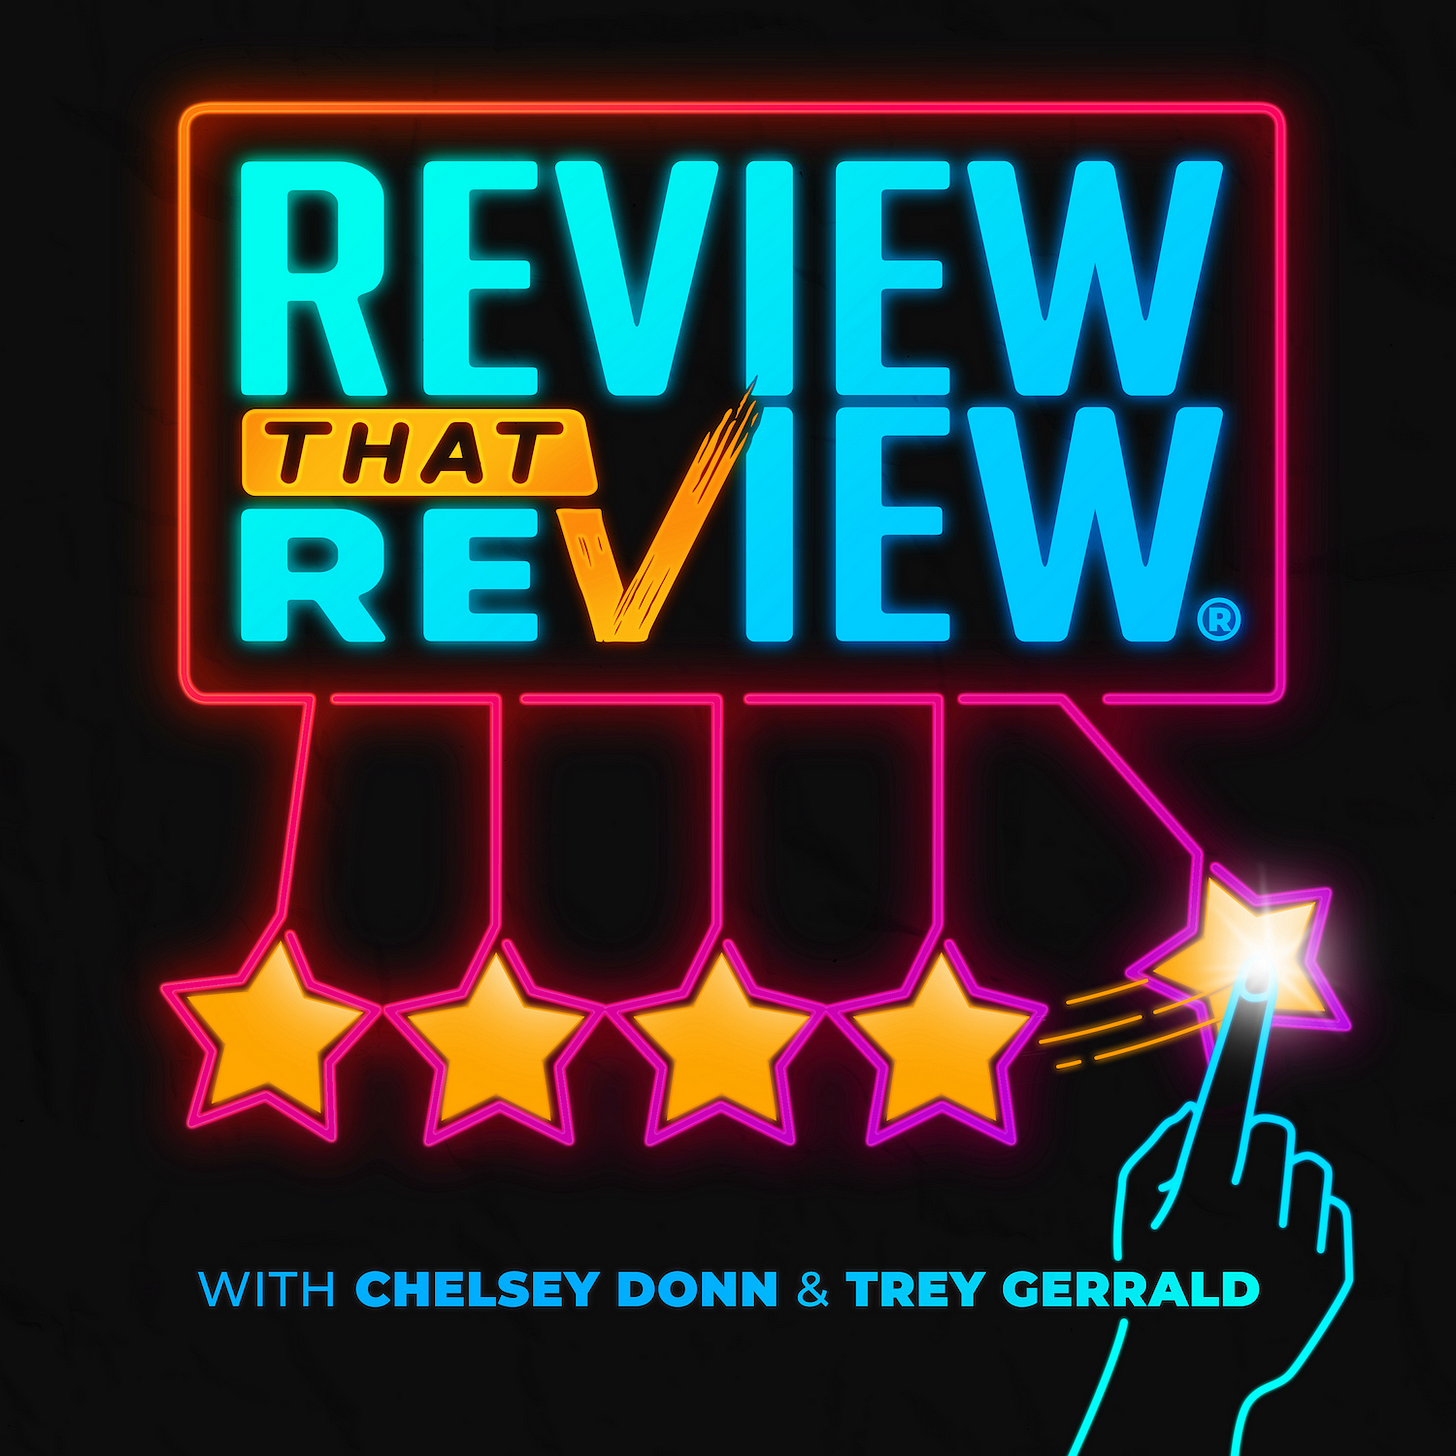 Review That Review with Chelsey Donn & Trey Gerrald